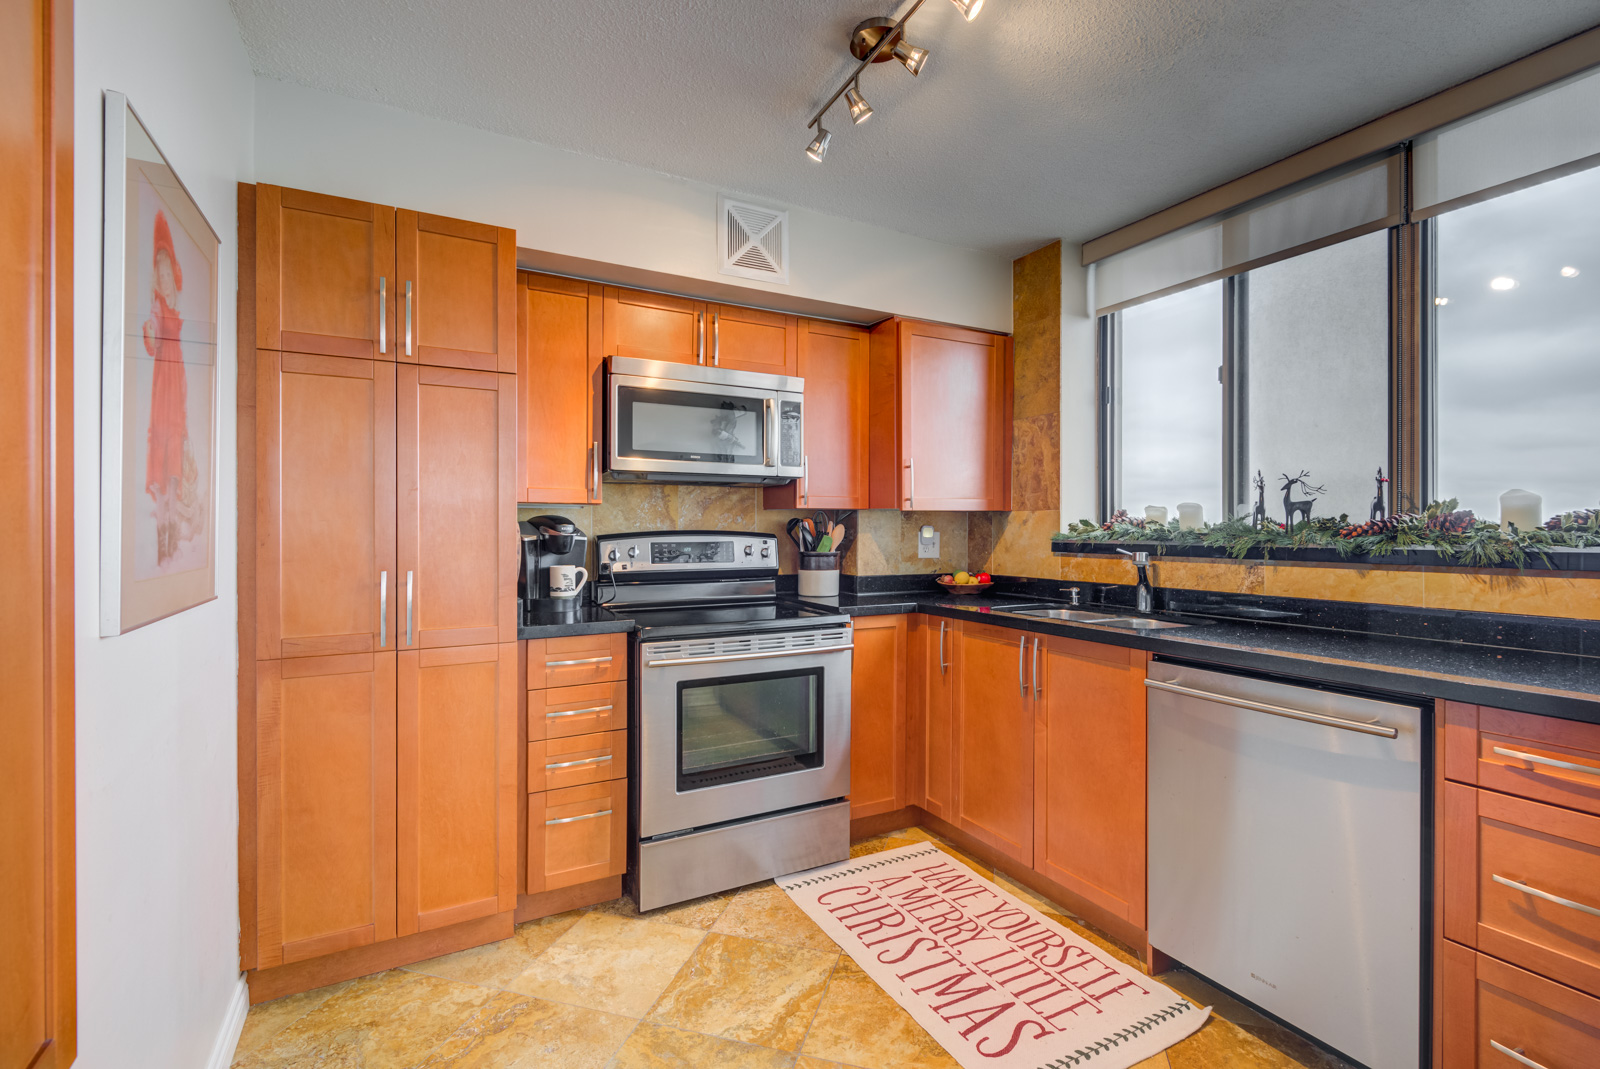 Large kitchen with orange oak cabinets, drawers, silver appliances, slate floors and track-lights.